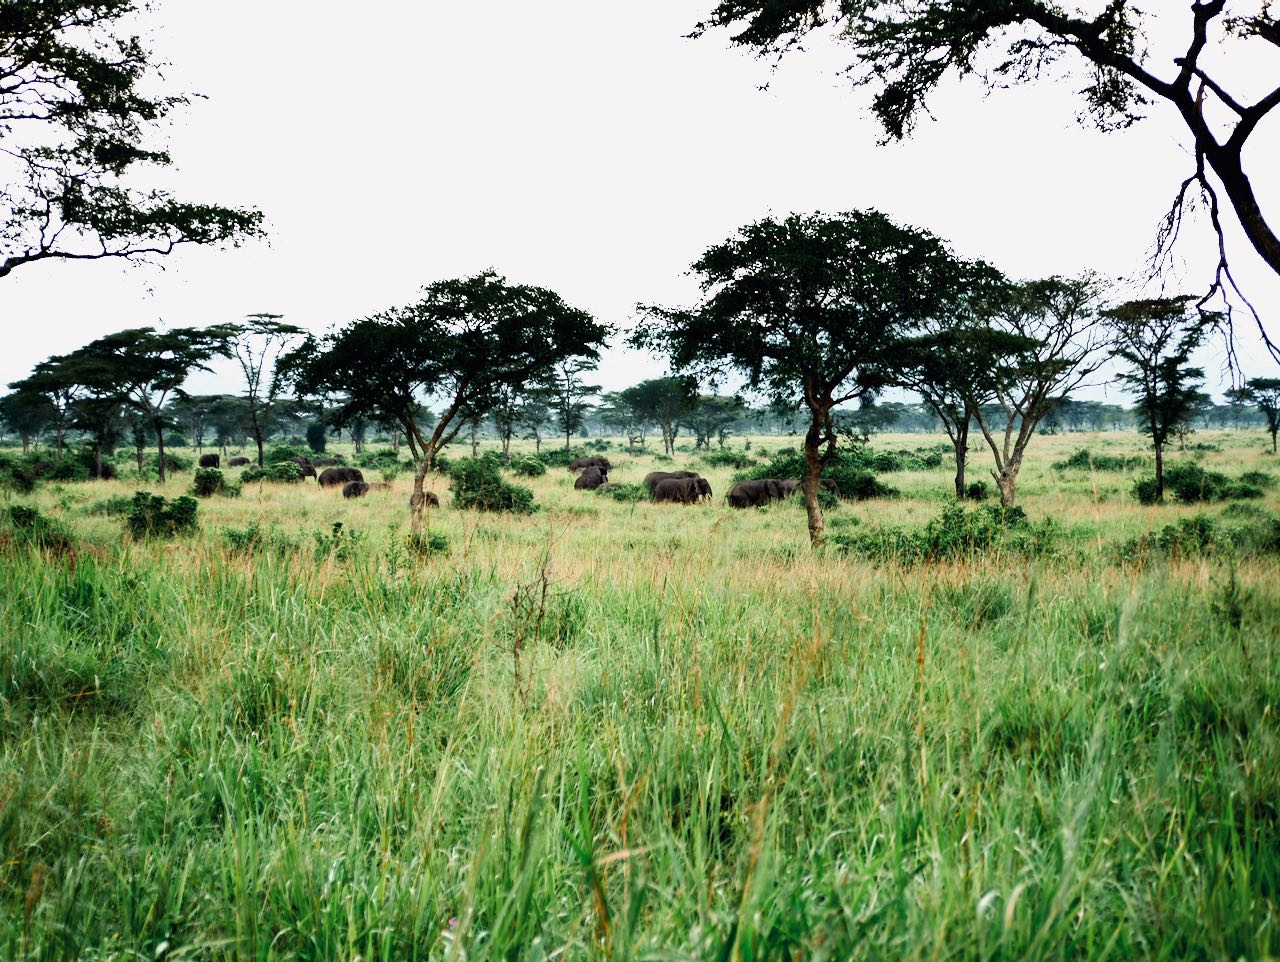 Elefanten in Uganda nahe des Queen Elizabeth Nationalparks